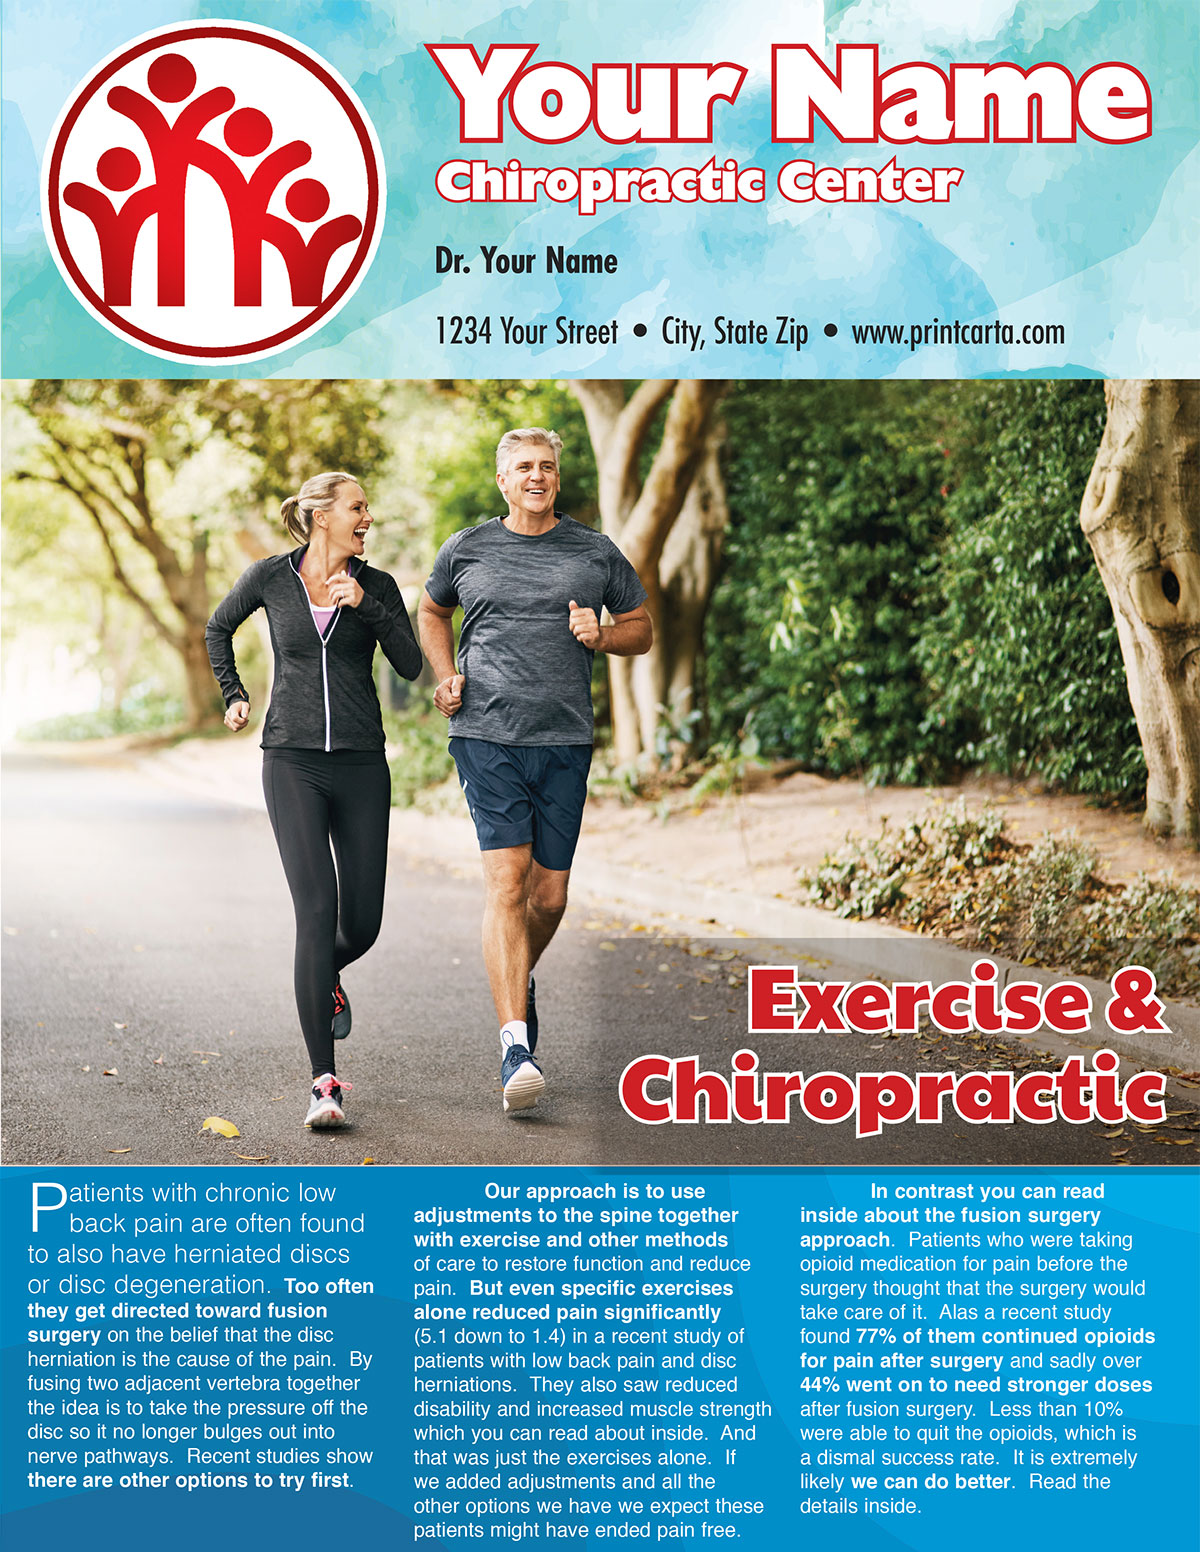 Exercise & Chiropractic